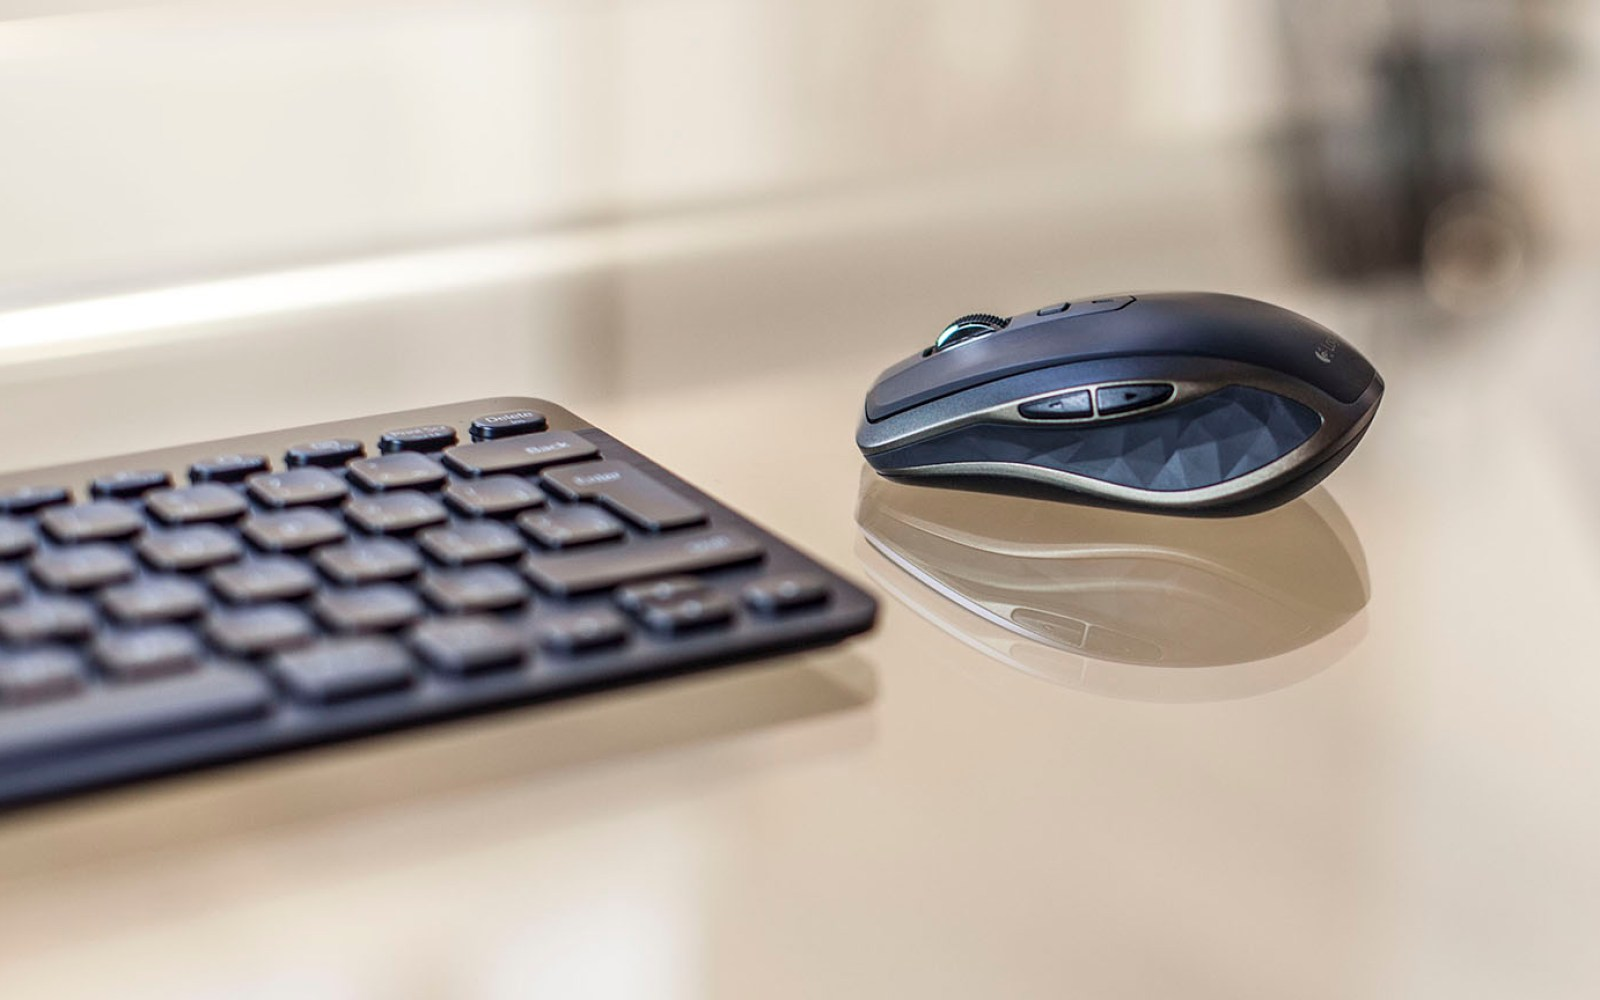 Logitech's new Anywhere 2 wireless mouse follows the design and success of the popular Master MX